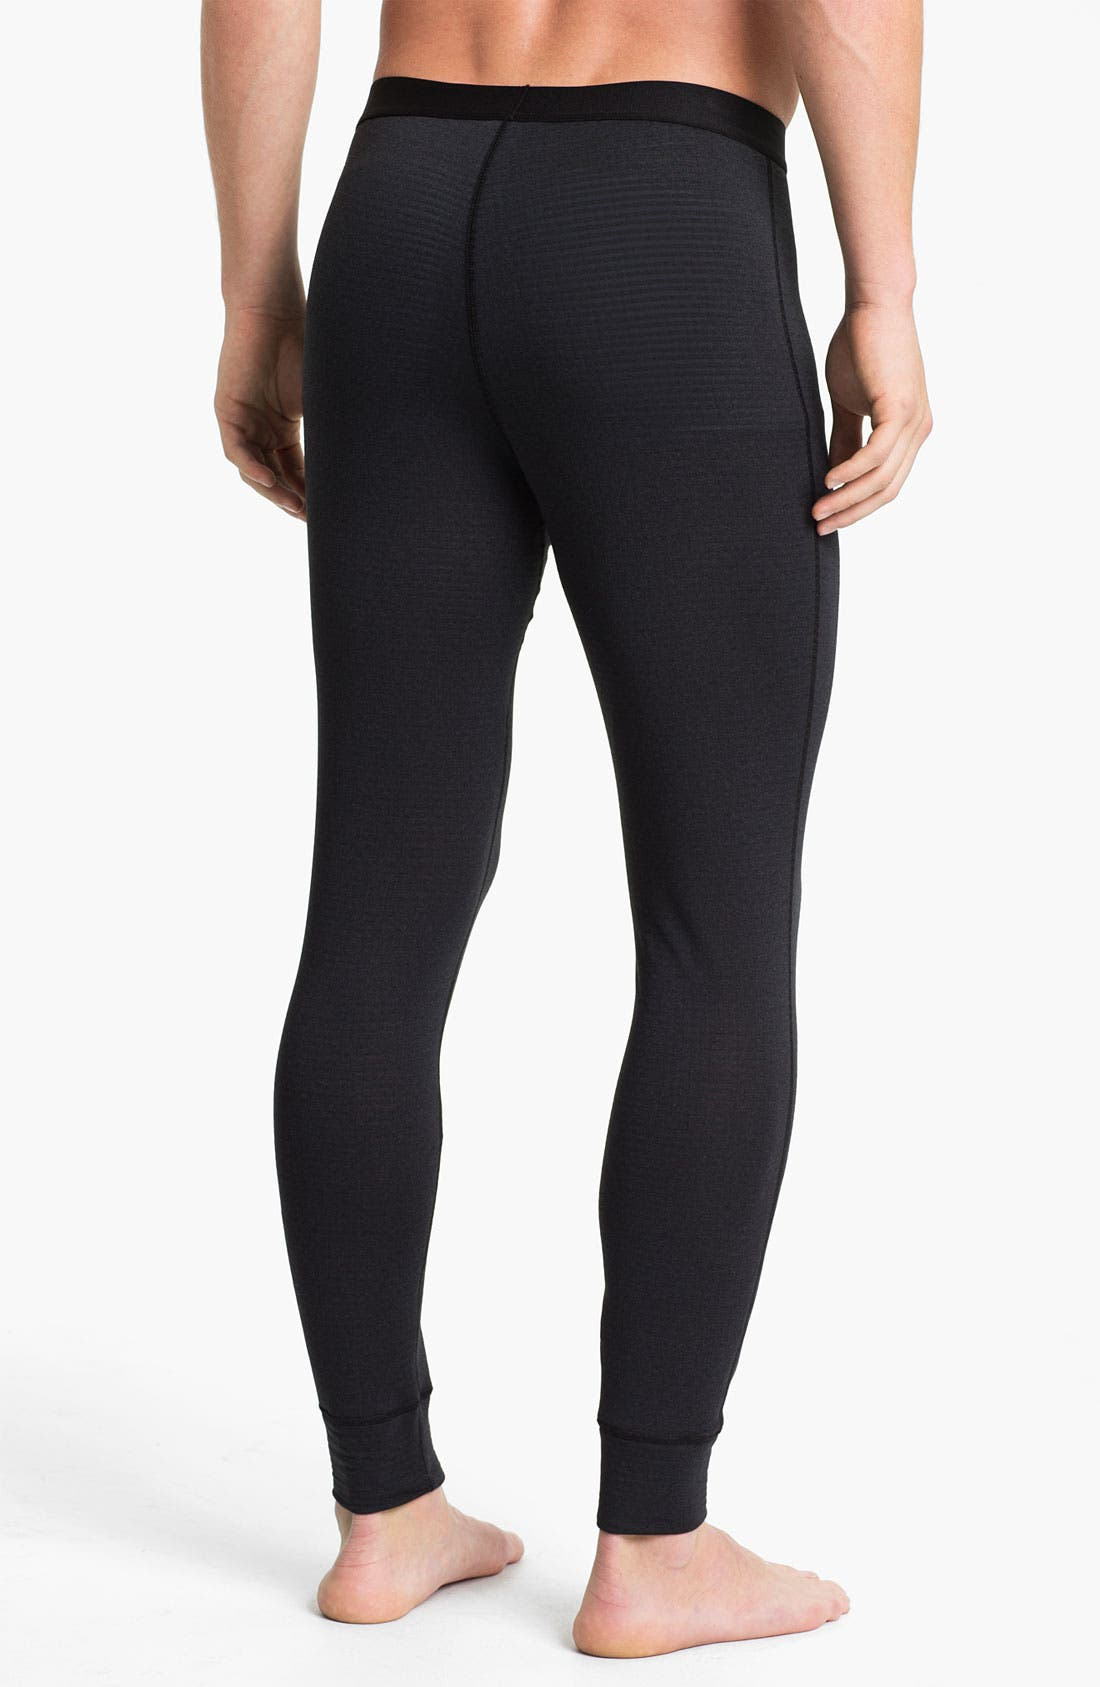 'Capilene<sup>®</sup> 4' Expedition Weight Base Layer Pants,                             Alternate thumbnail 2, color,                             Black